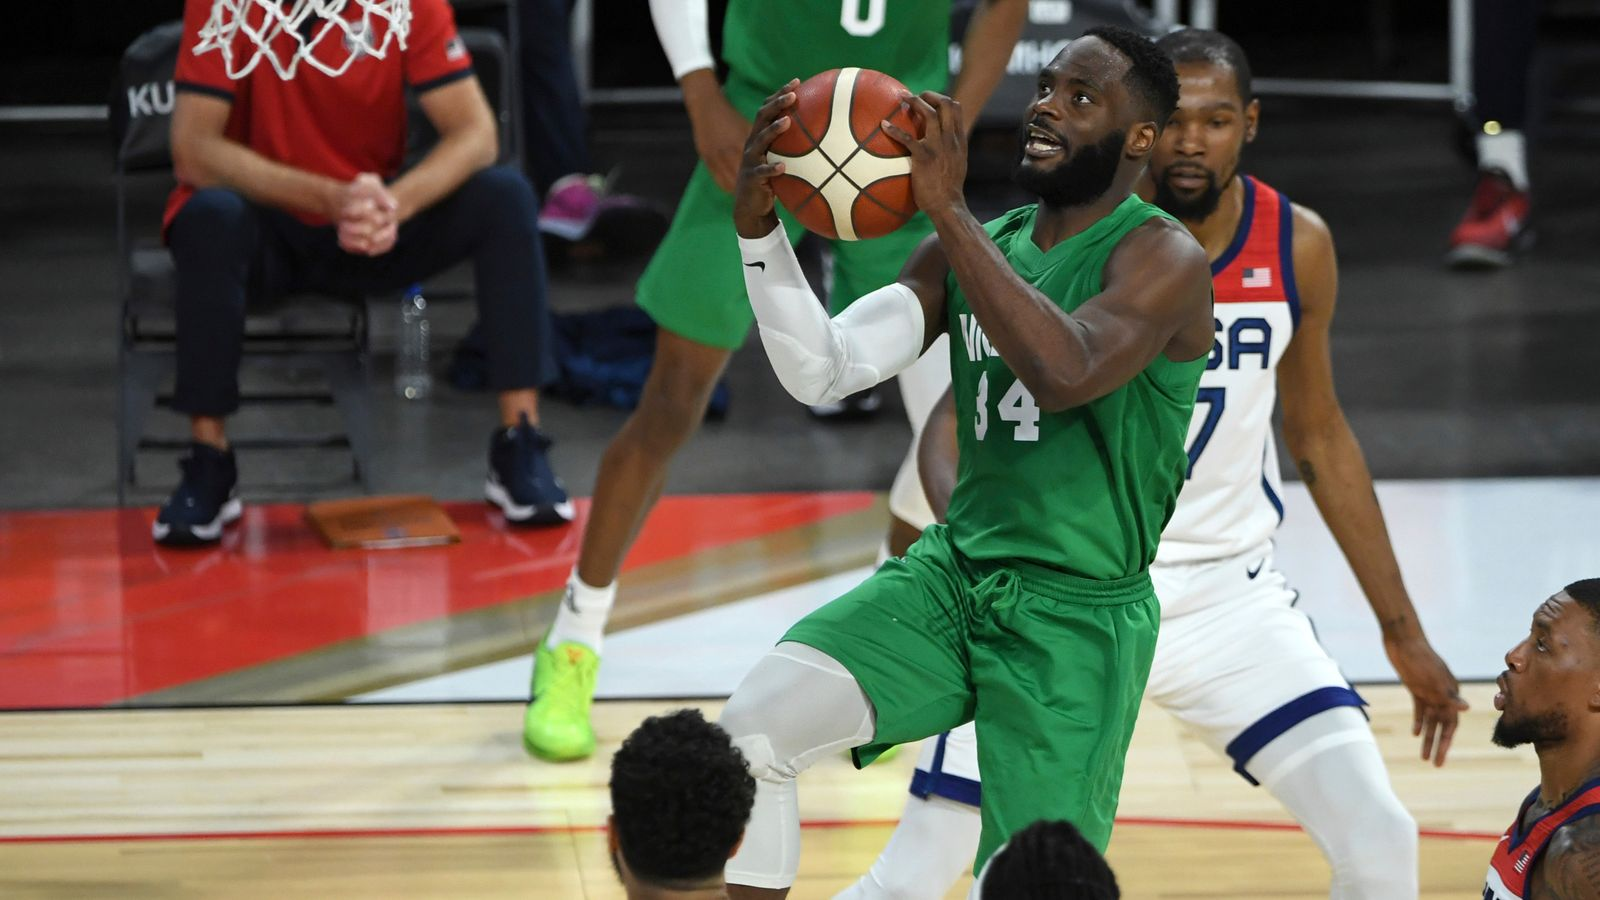 Olympics: Nigeria stun Team USA with shock win in Games' exhibition match in Las Vegas